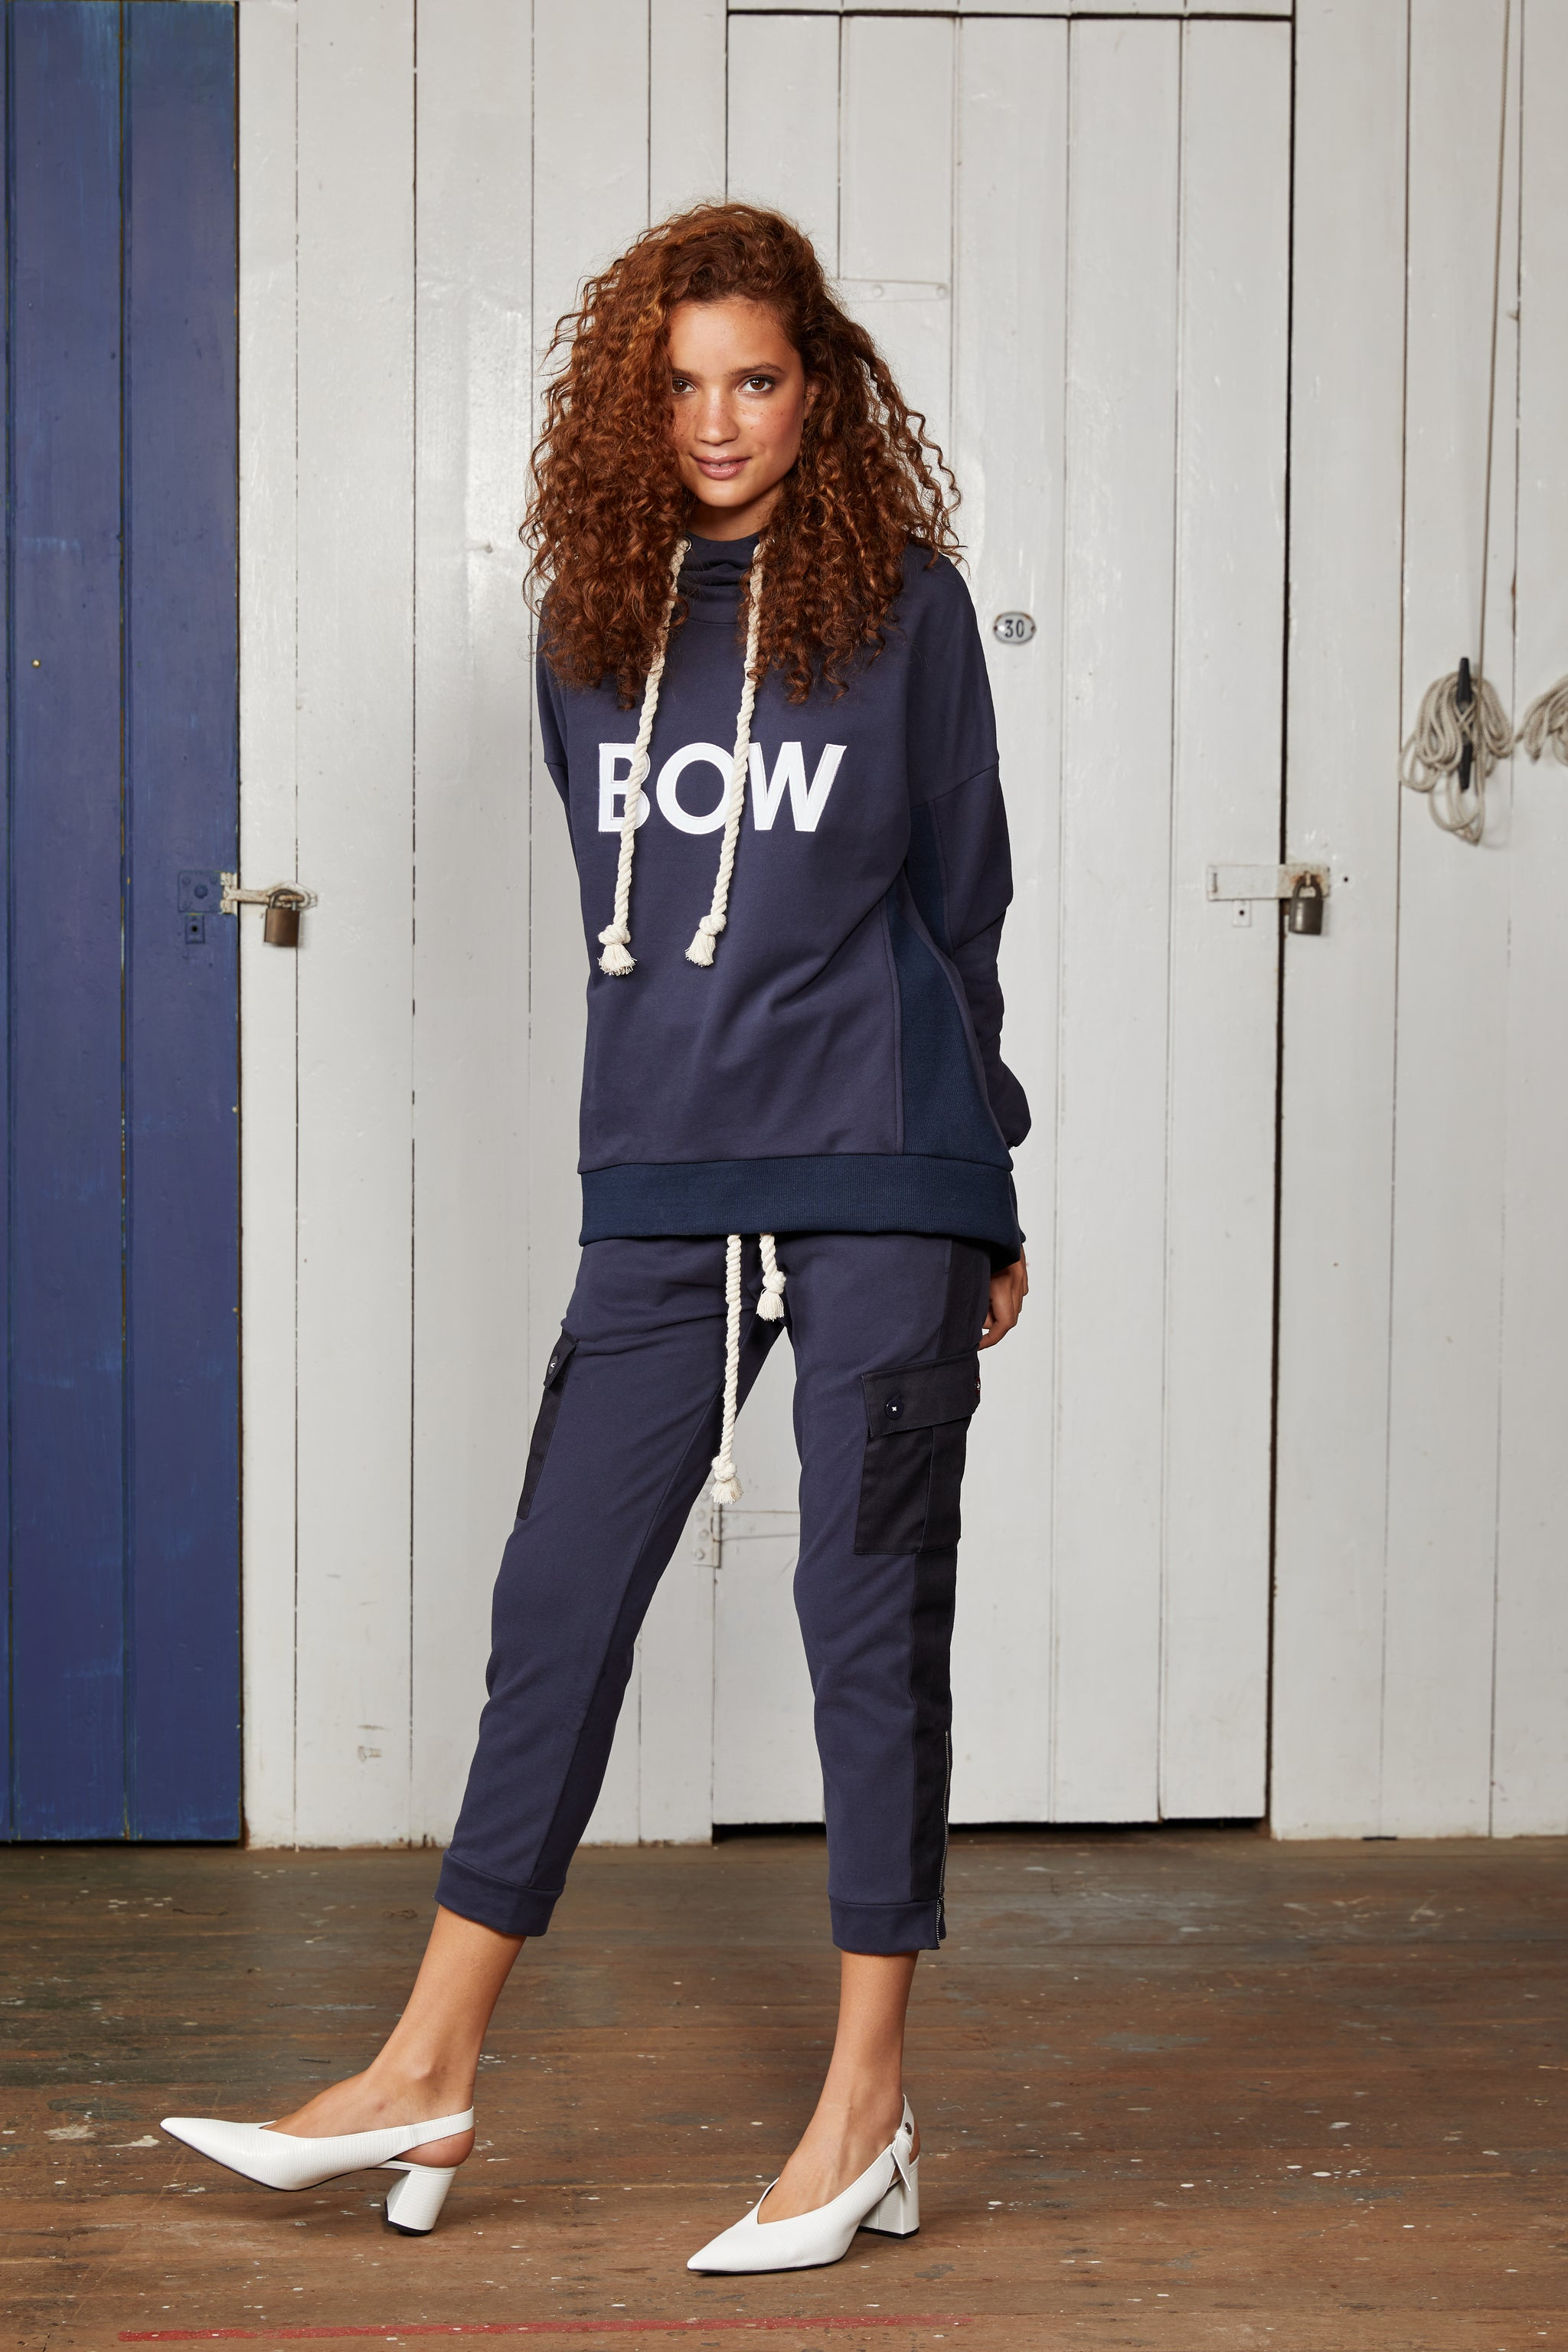 Binny Ladies Deckhand Trackpant in Navy Blue with Pockets, Wide Elastic Waistband and Side Zips at Leg Cuff